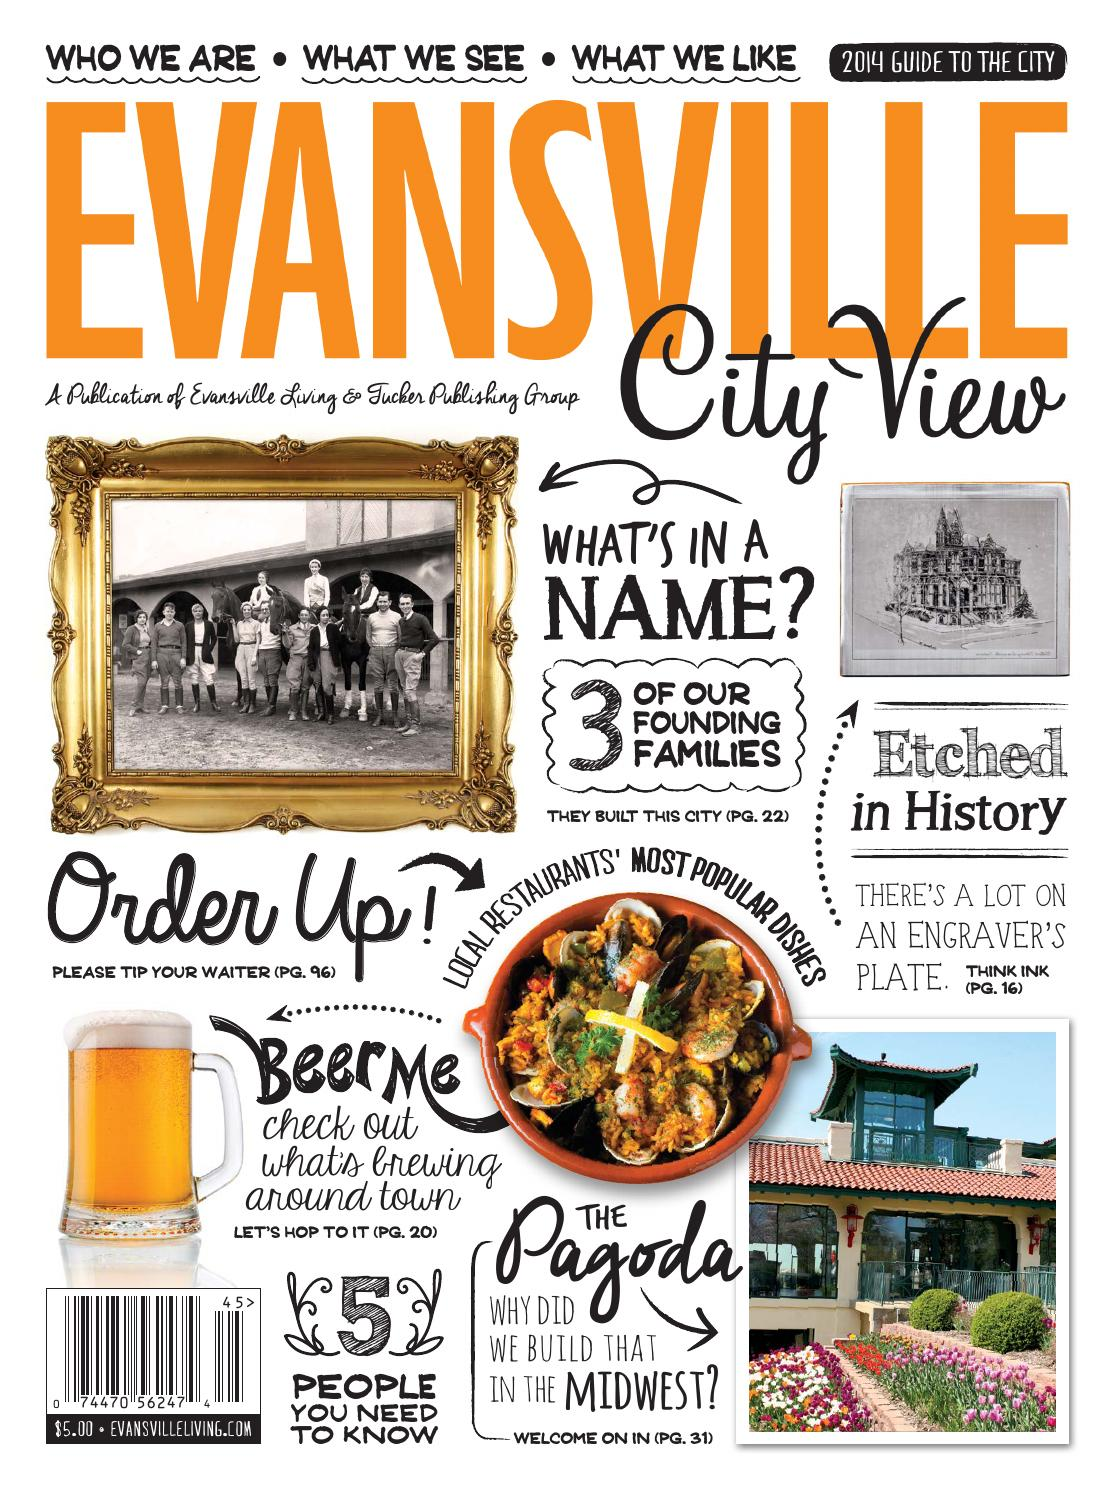 Evansville city view 2014 by evansville living magazine issuu fandeluxe Image collections